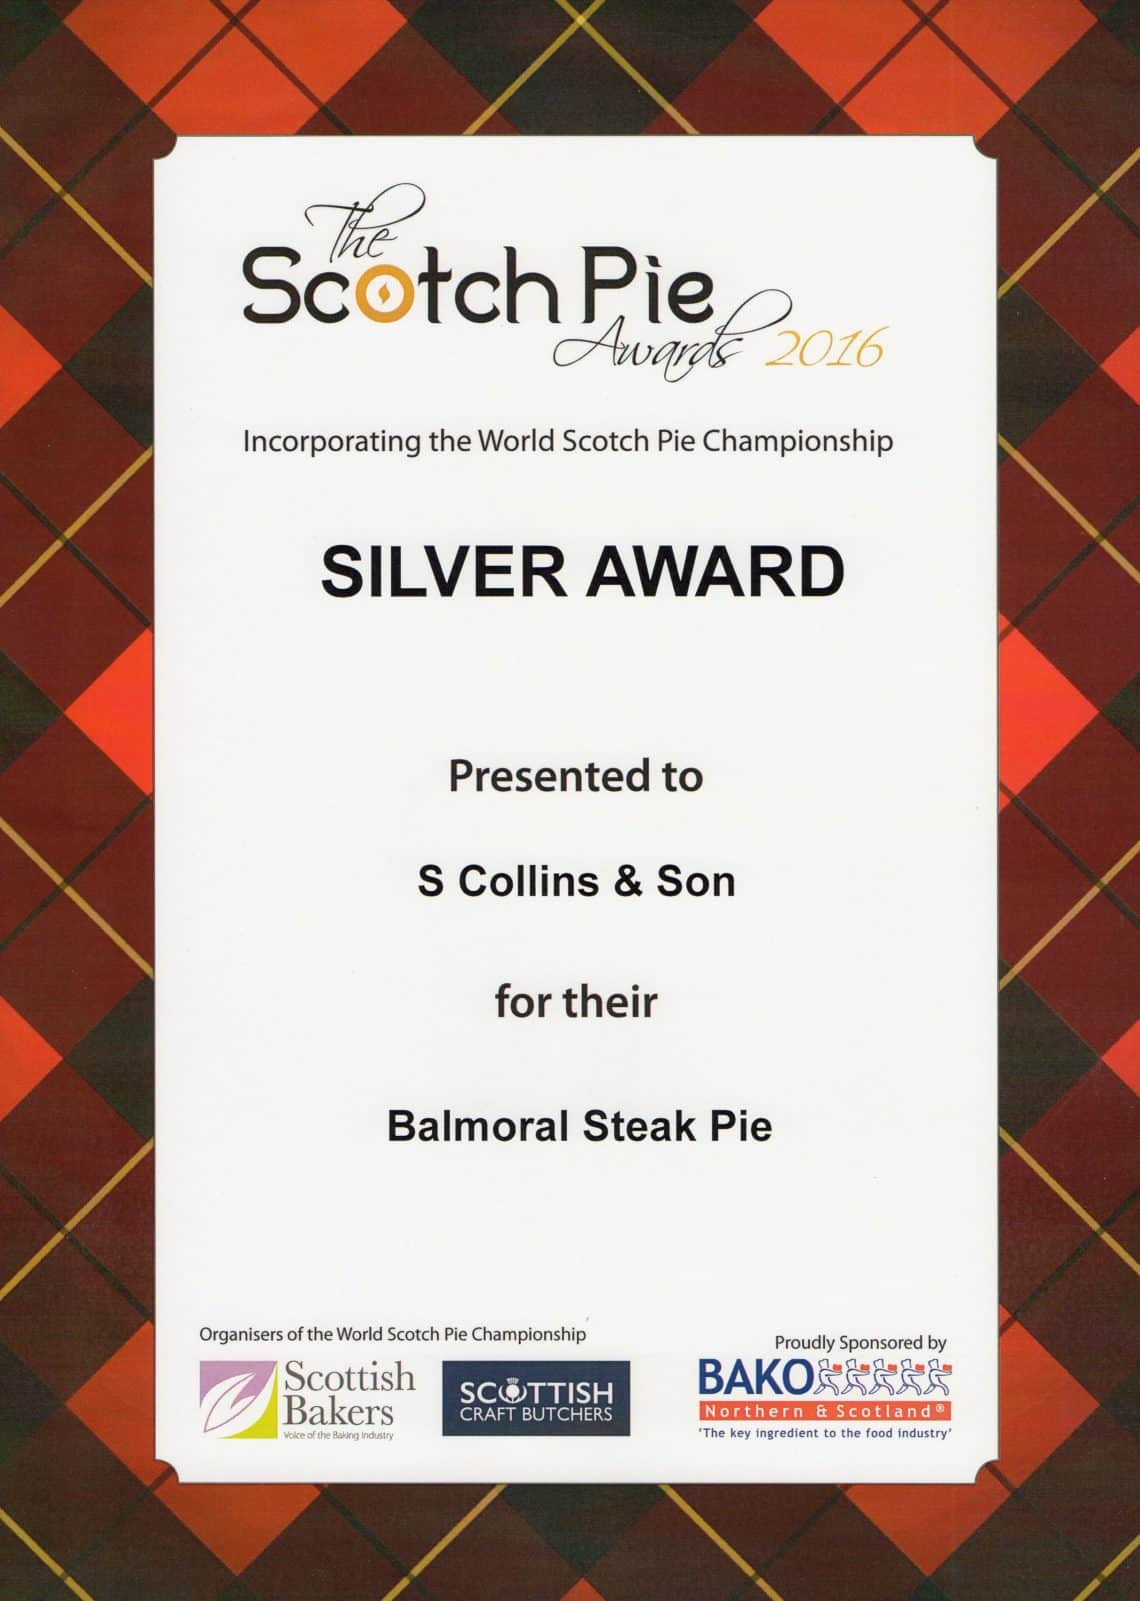 Scotch Pie 2016 Awards: Balmoral Steak Pie